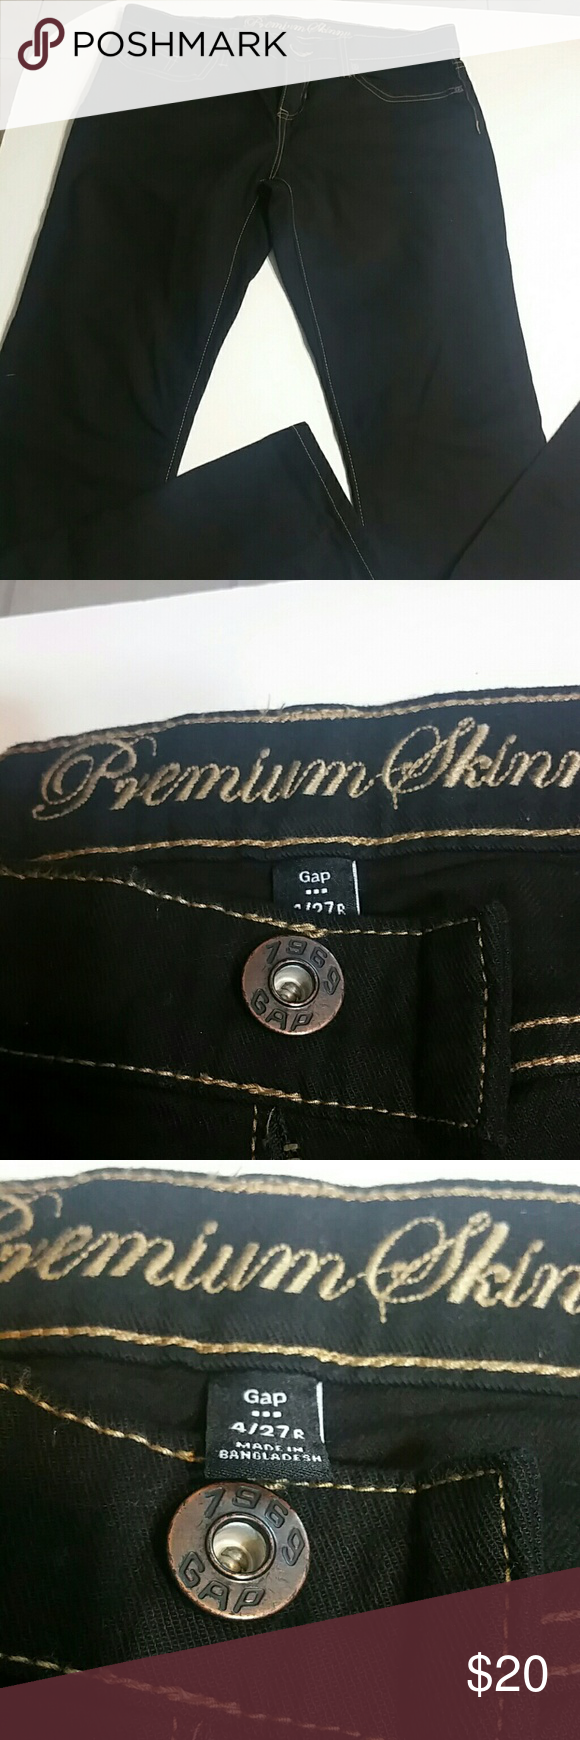 Gap premium skinny size 4/27R perfect condition item worn only one time Gap Jeans Skinny